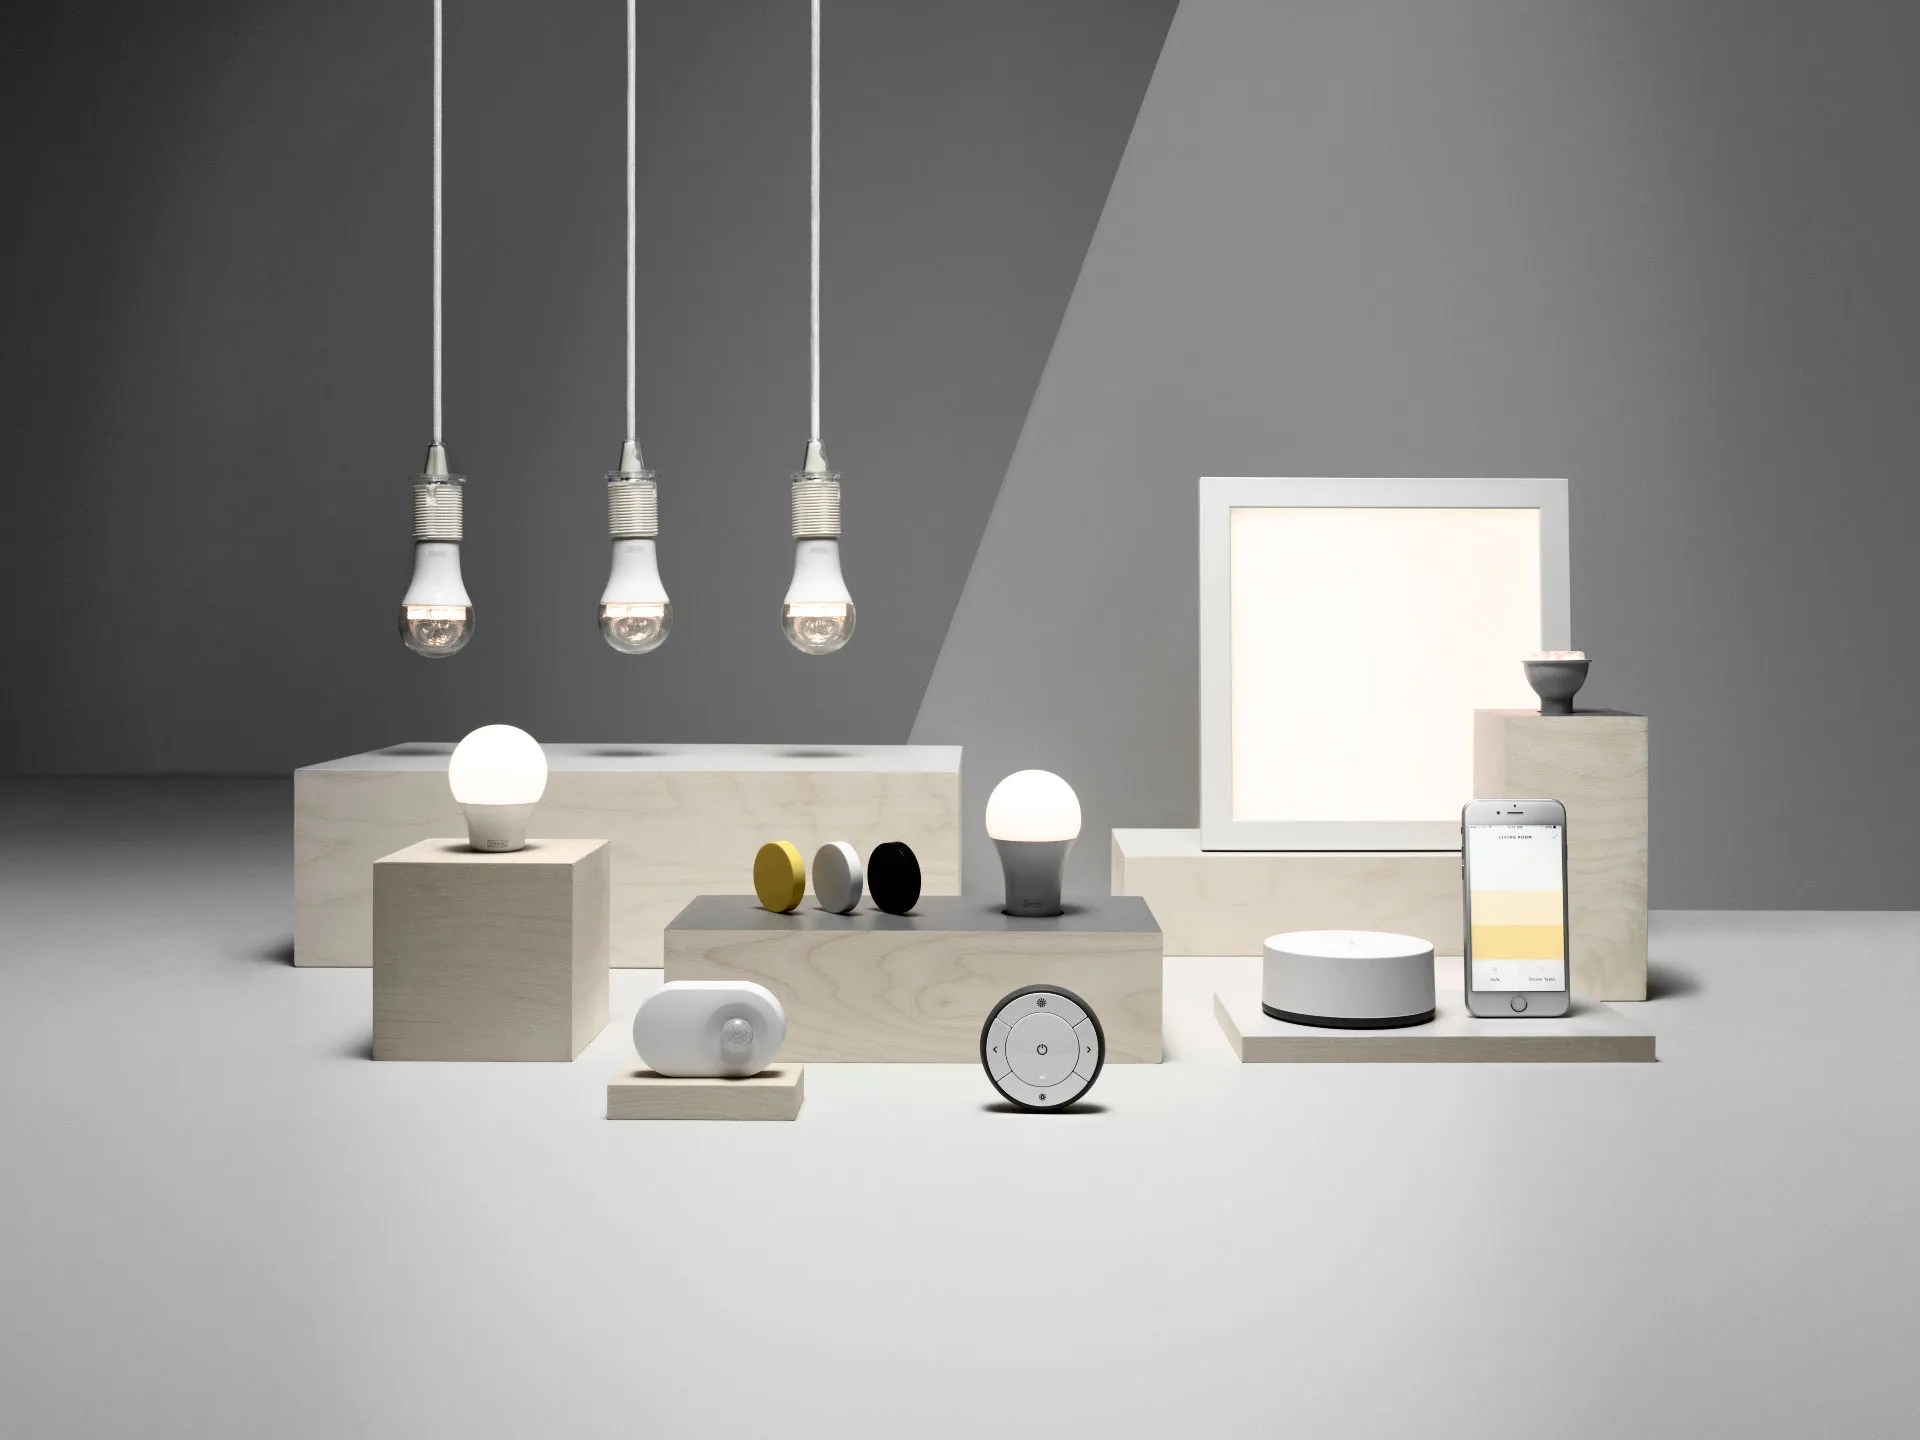 Product Smart Ikea S Home Smart Line Could Shake Up The Smart Home Industry Wired